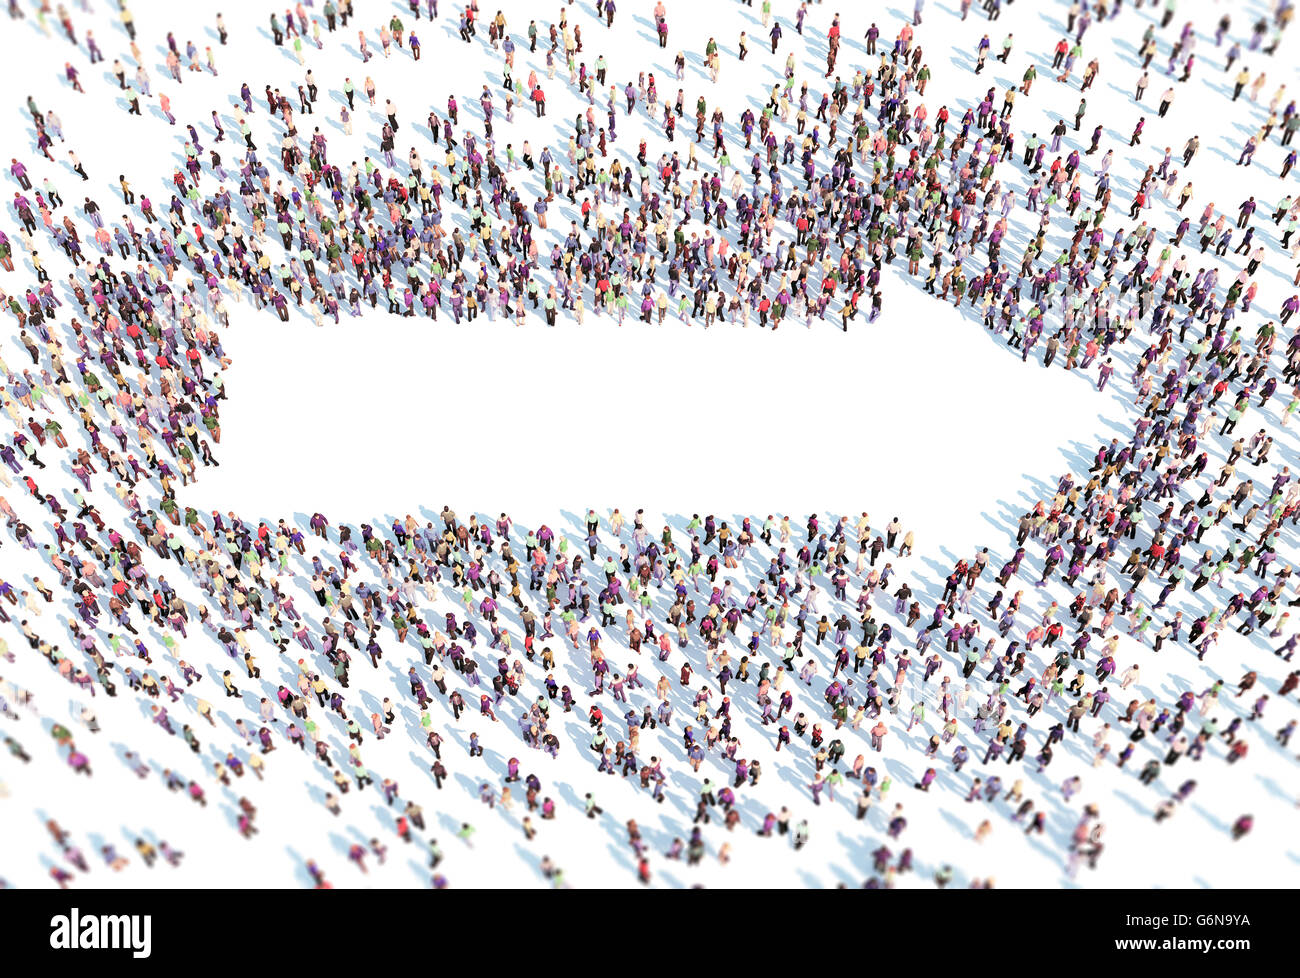 Large group of people forming a arrow symbol - 3D illustration - Stock Image